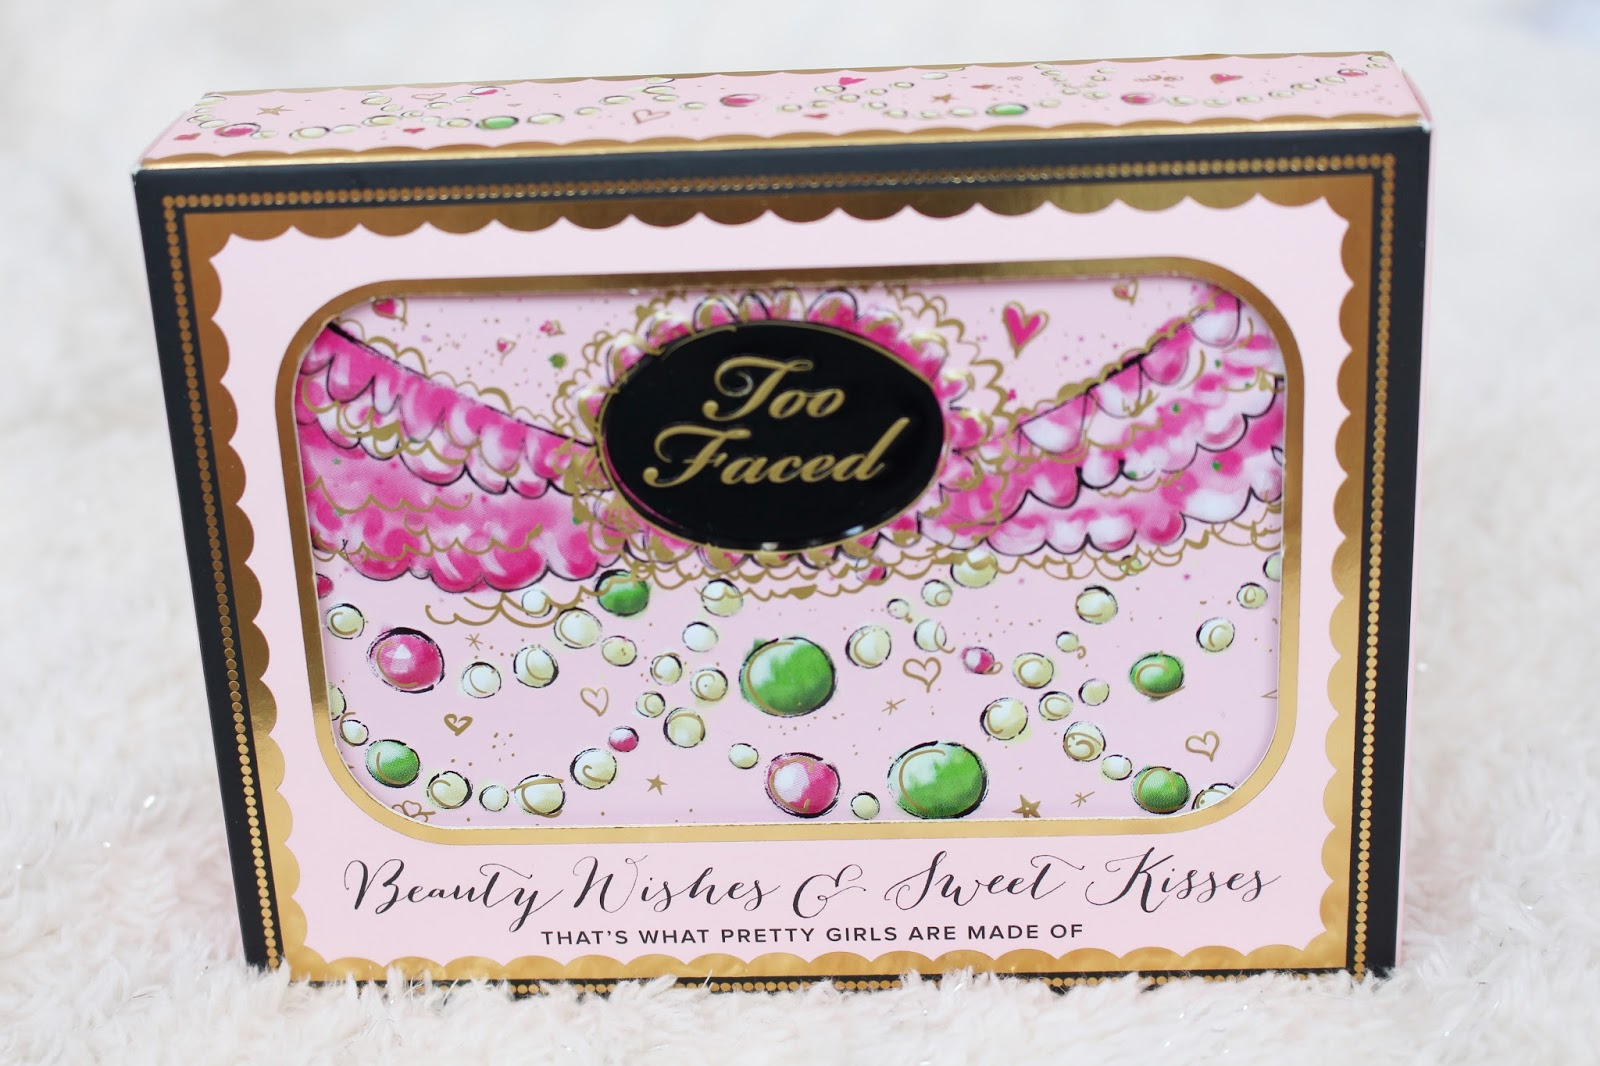 Too Faced Beauty Wishes & Sweet Kisses